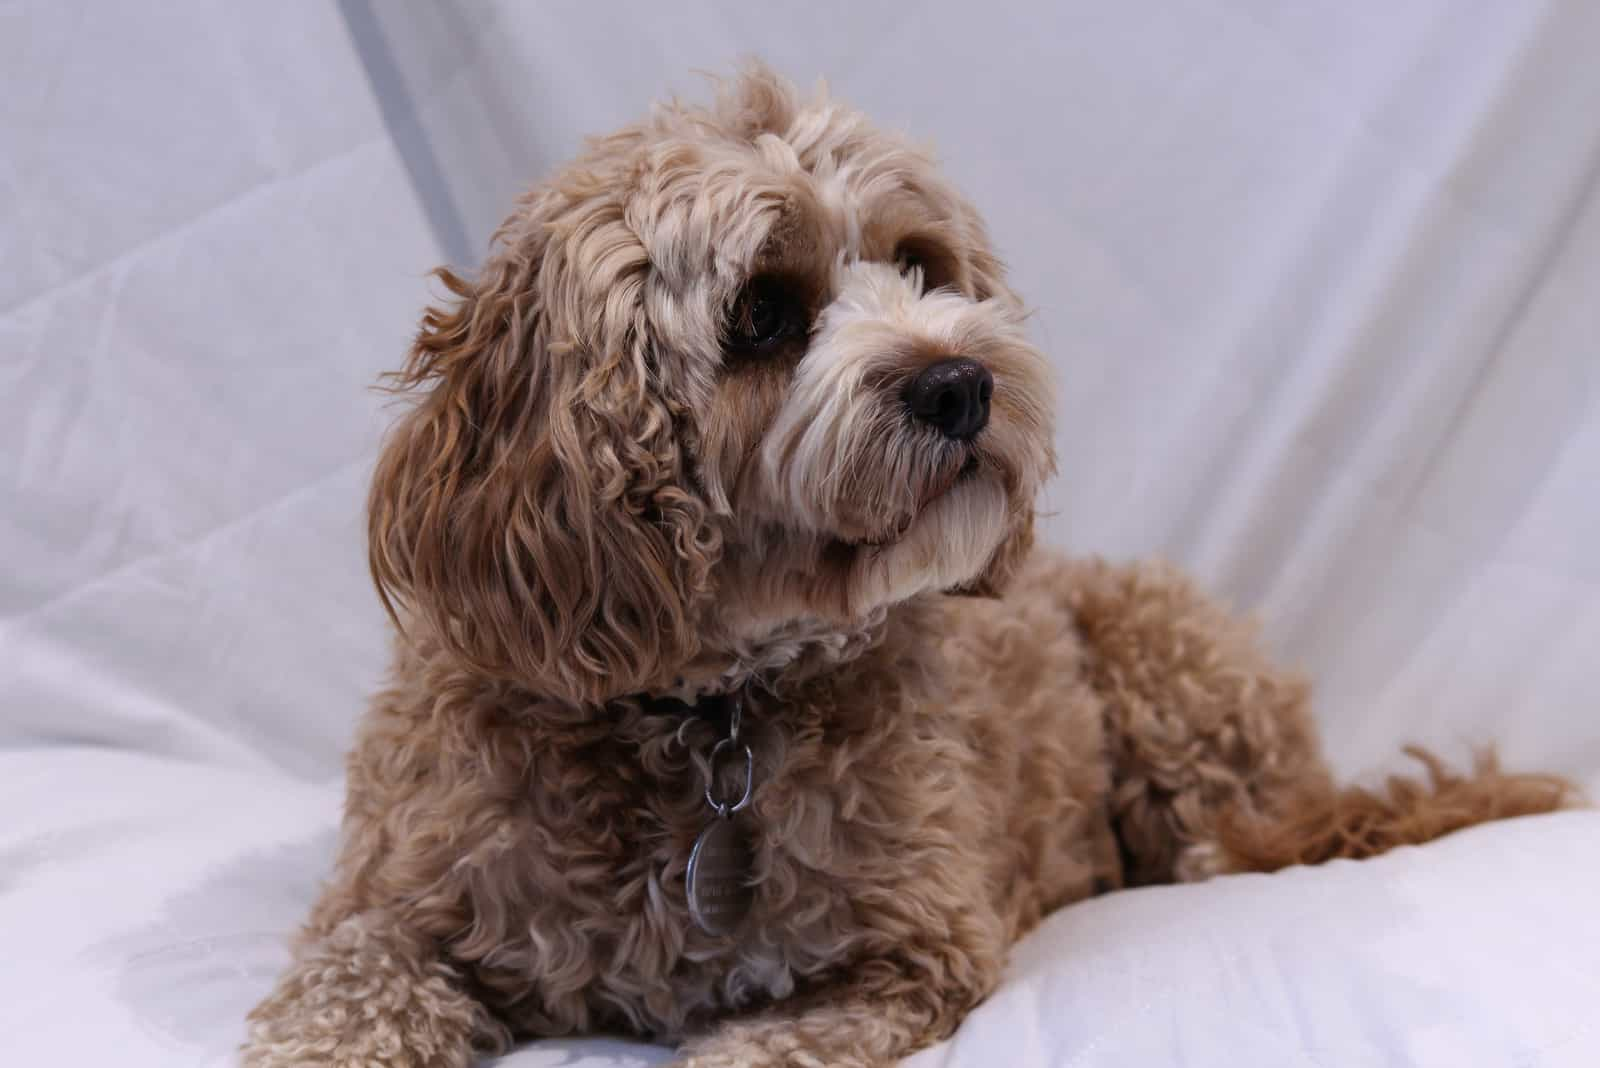 Cute cavapoo dog lying down against a white background